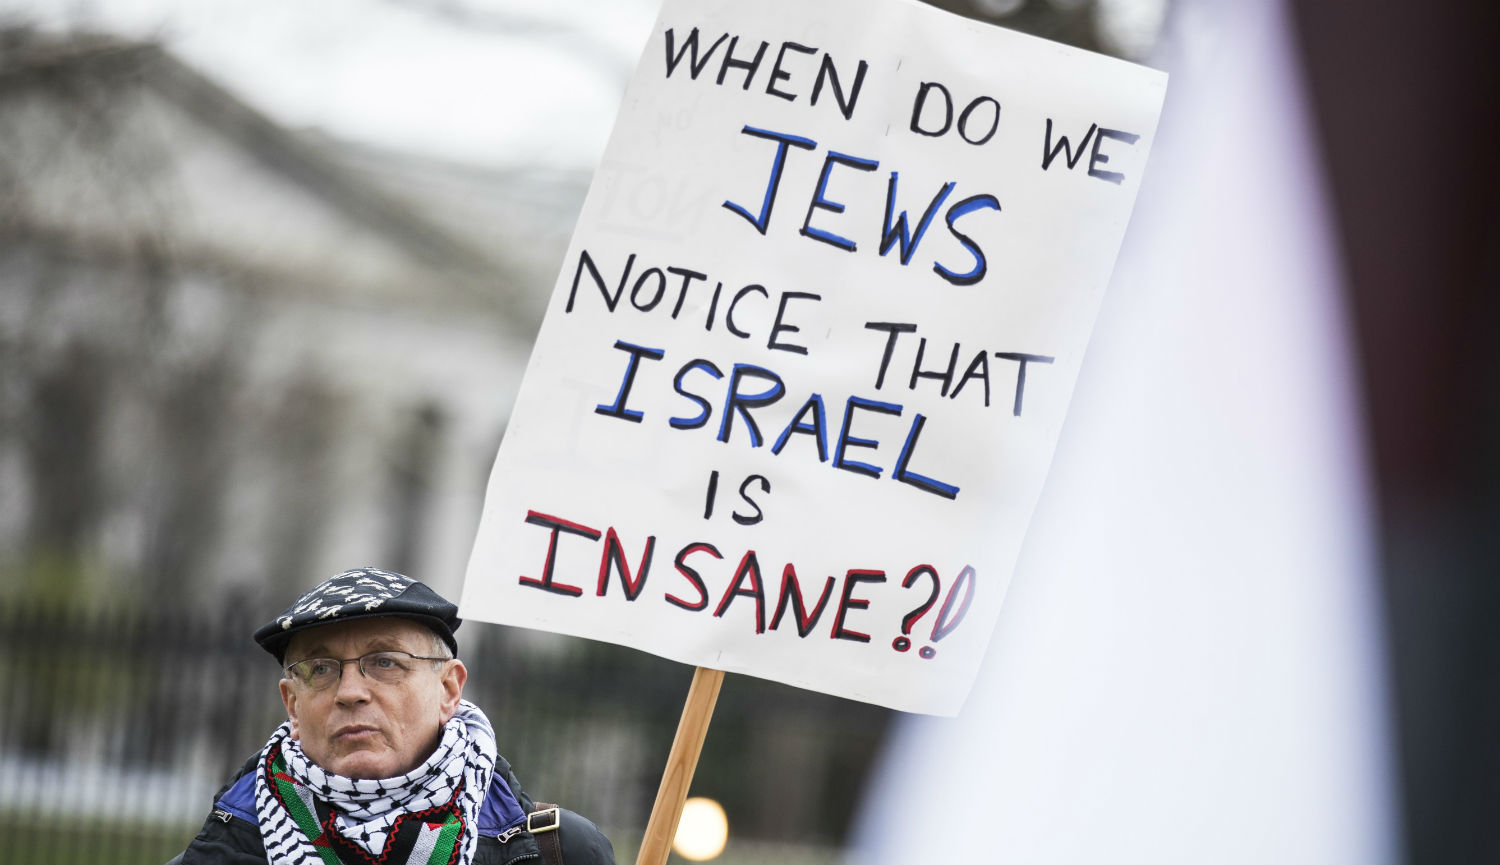 A protester at a rally in front of the White House during the annual AIPAC conference in Washington on March 26, 2017. Samuel Corum/Anadolu Agency/Getty Images.